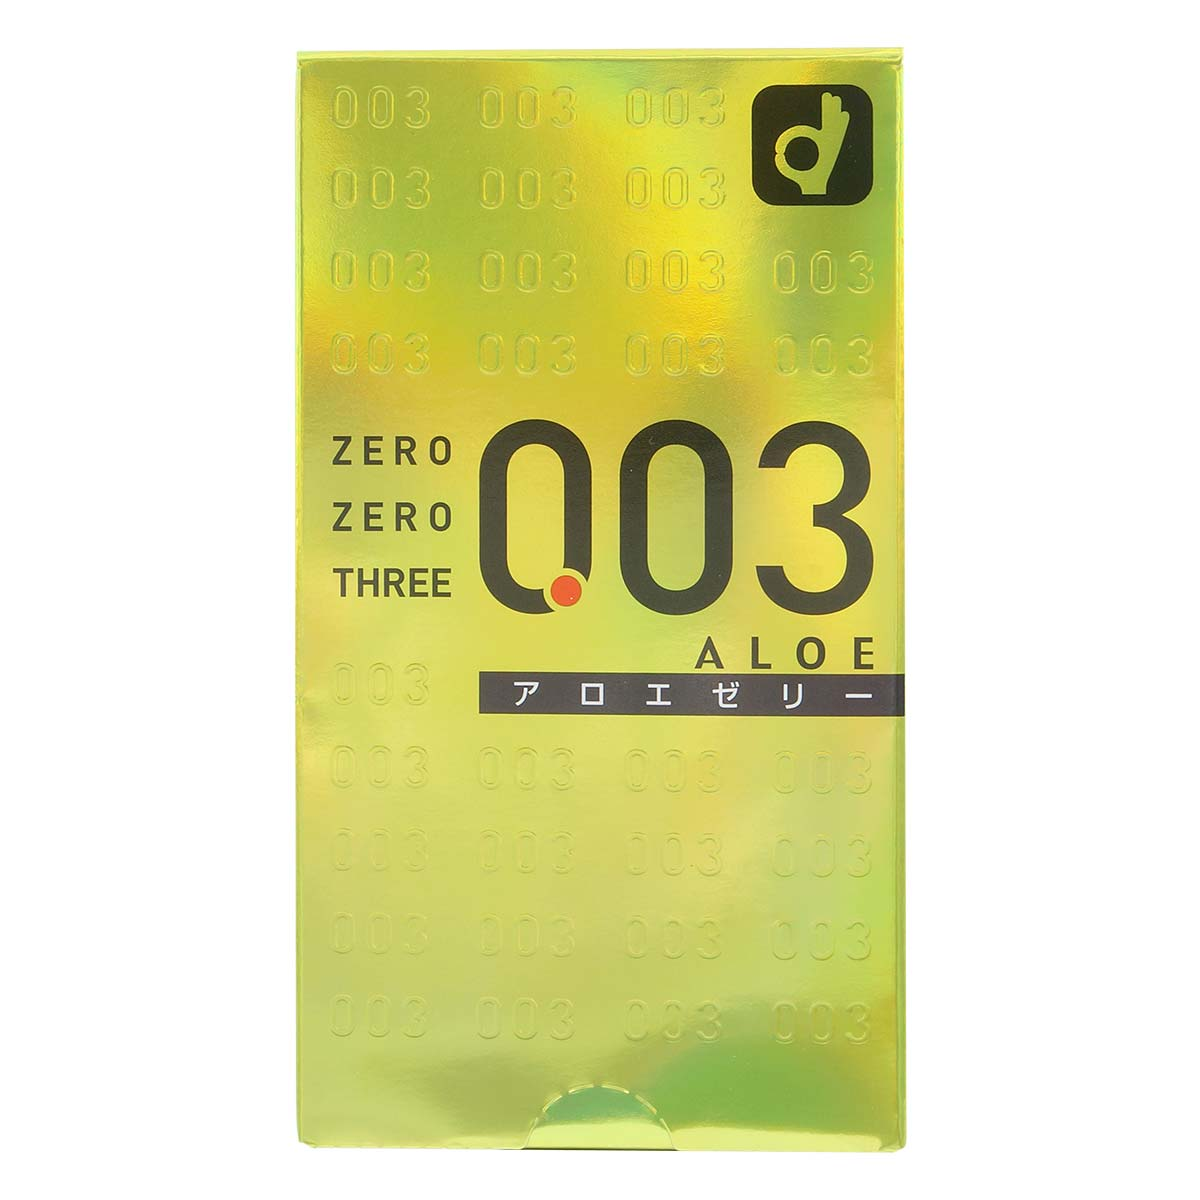 Zero Zero Three 0.03 Aloe (Japan Edition) 10's Pack Latex Condom